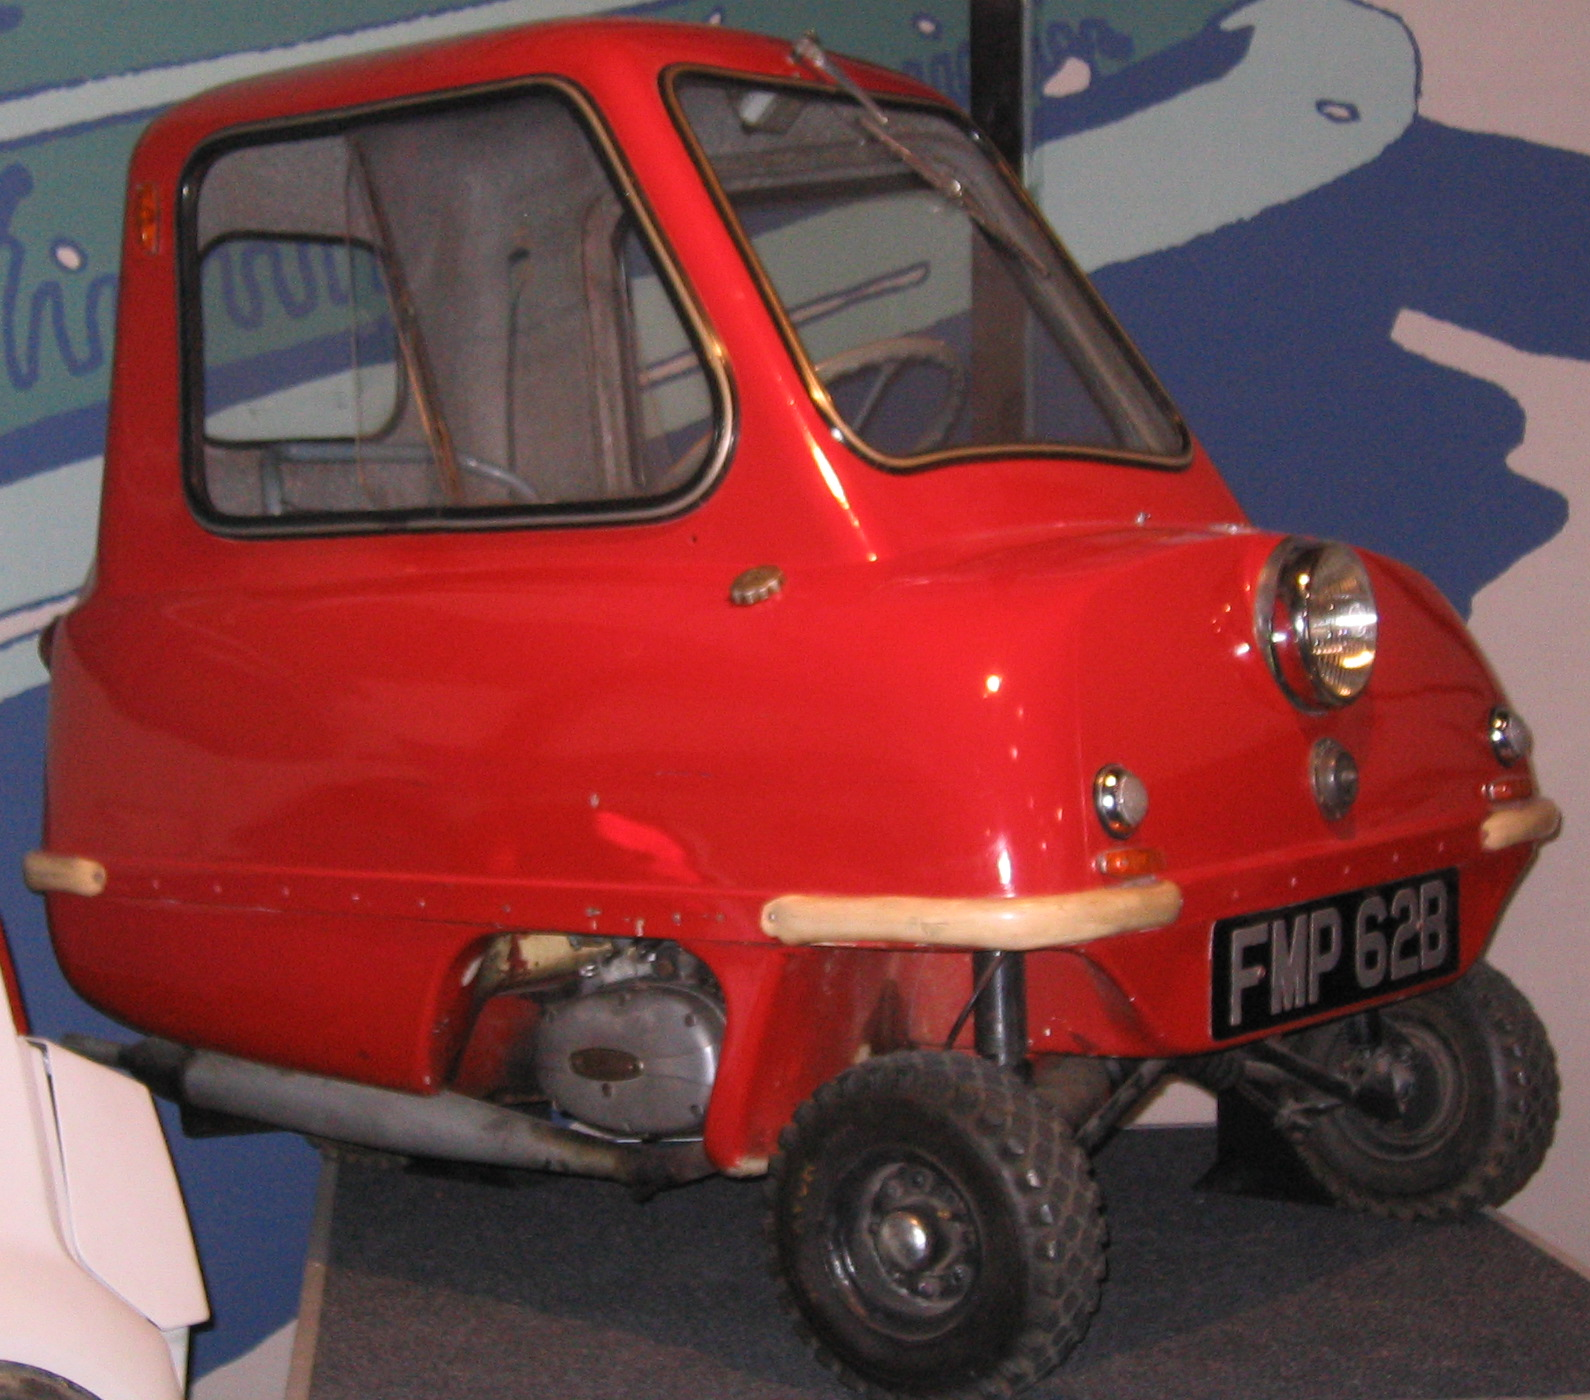 Peel P50 at Beaulieu.jpg